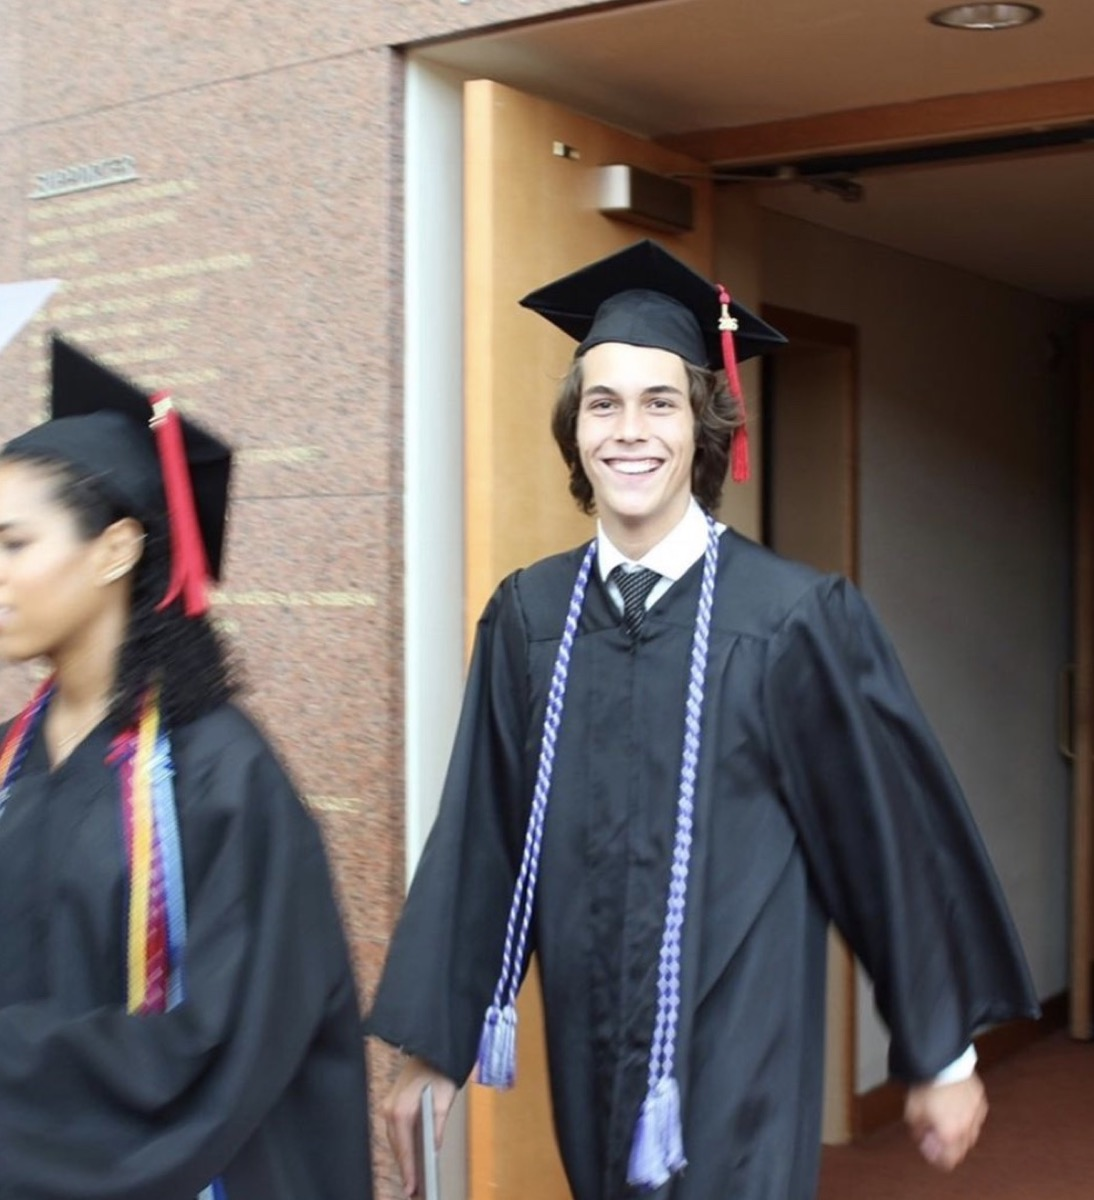 flynn busson in cap and gown emerging from a brick building